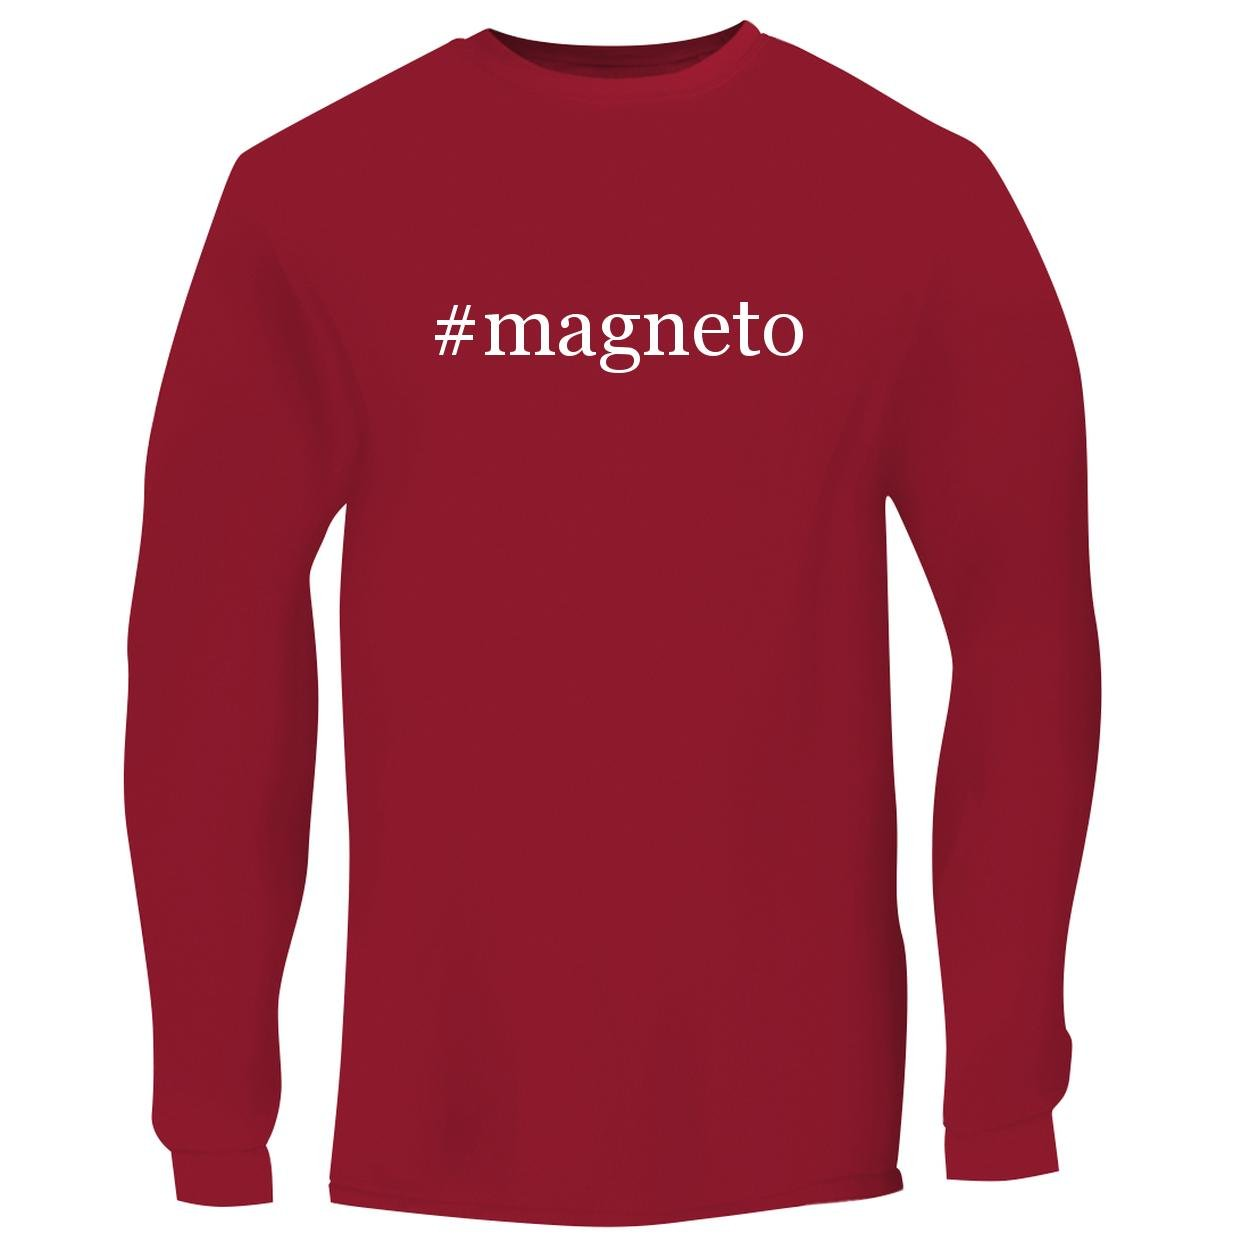 BH Cool Designs #Magneto - Men's Long Sleeve Graphic Tee, Red, Large